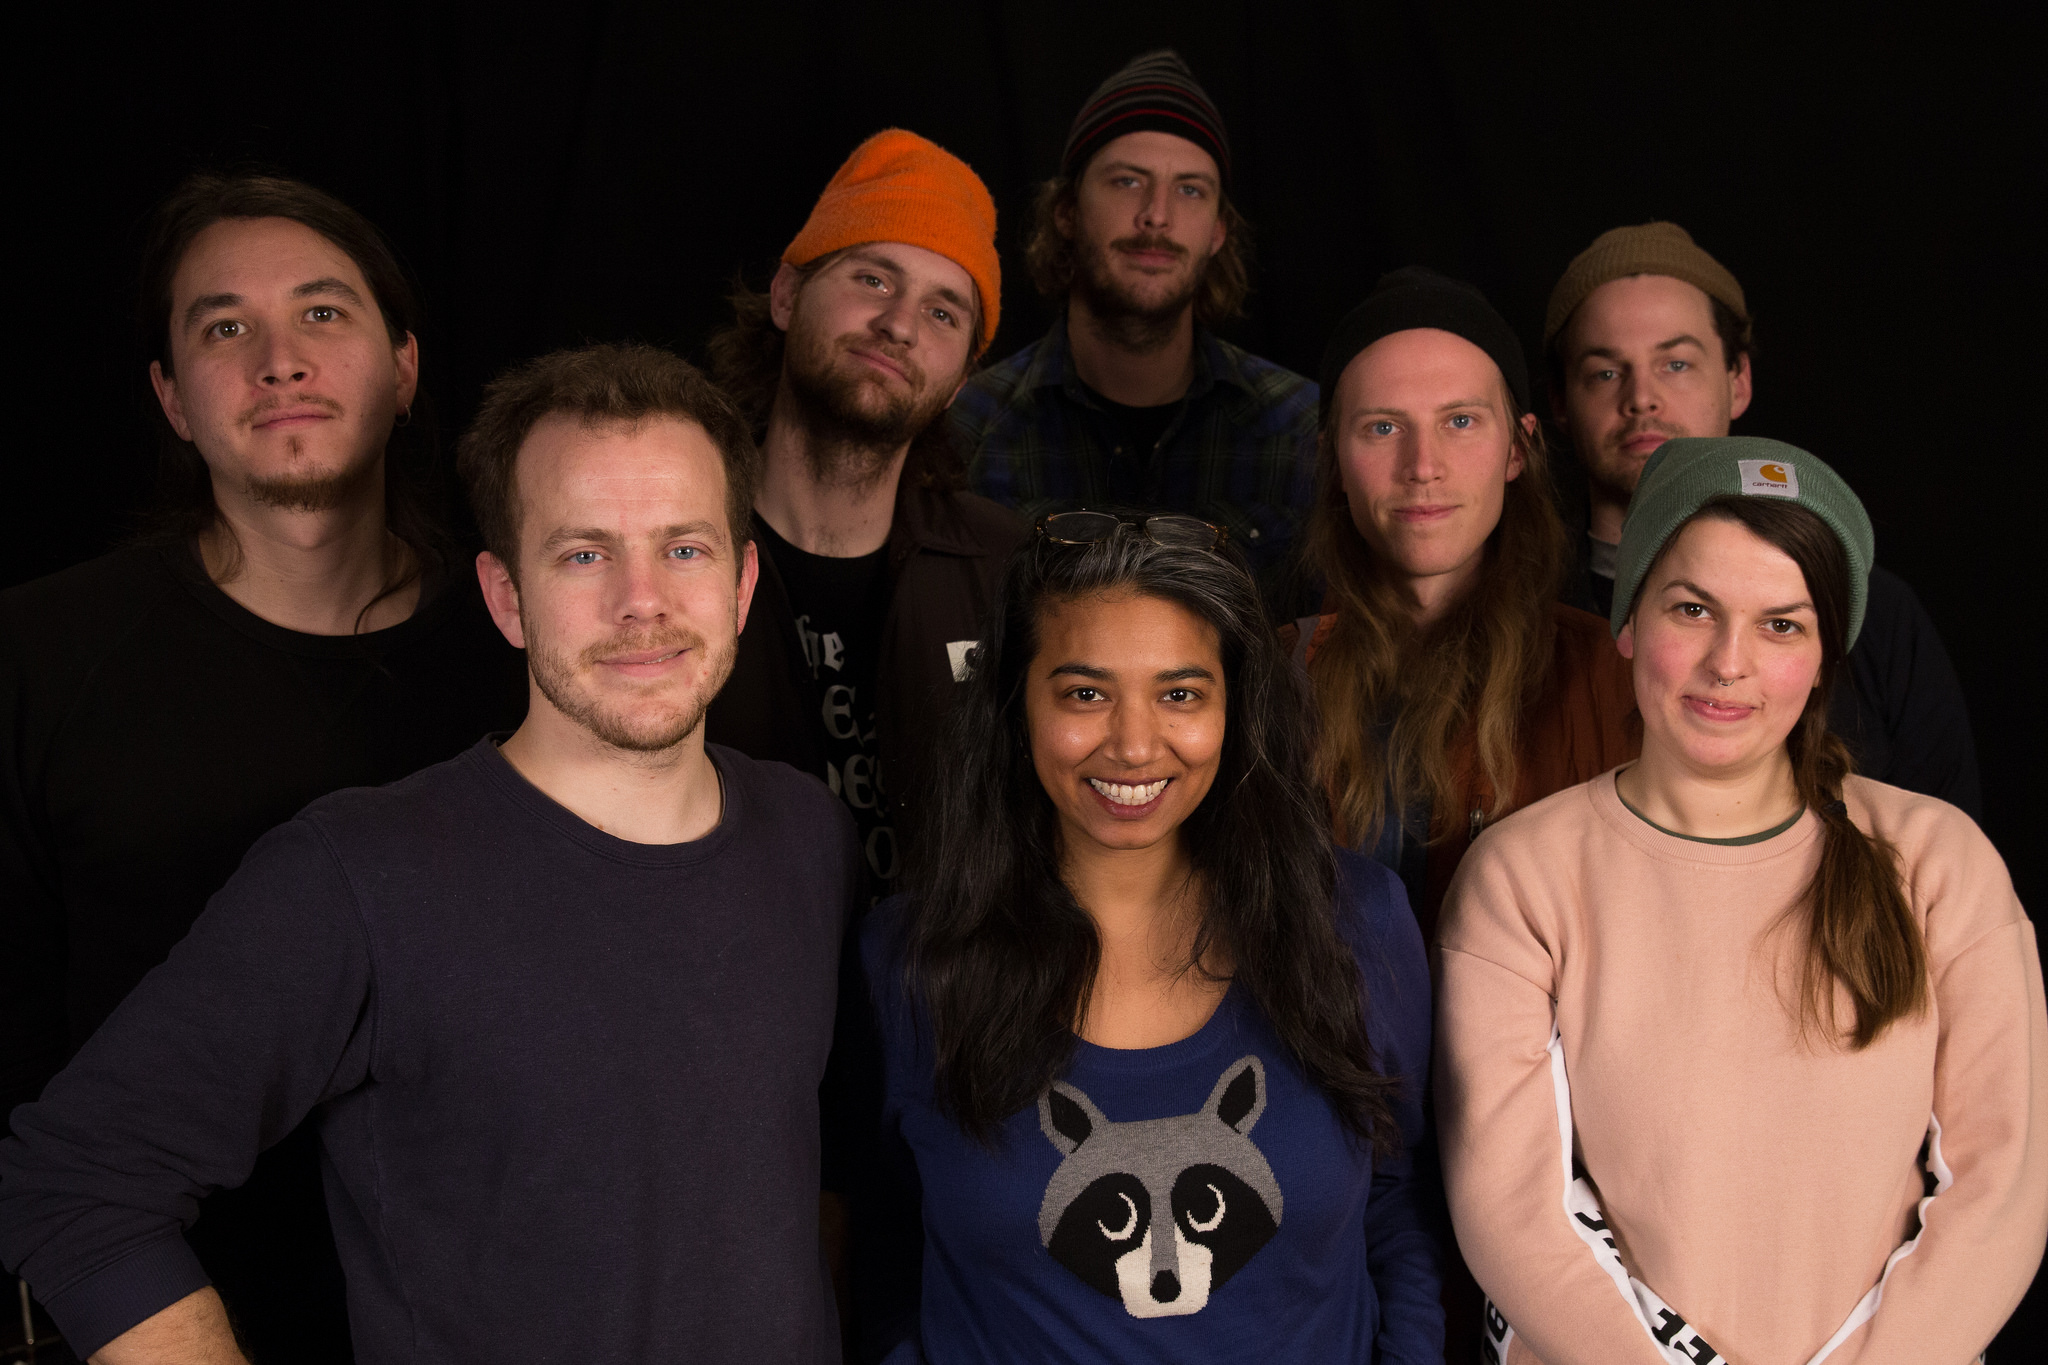 Typhoon at WFUV with Alisa Ali